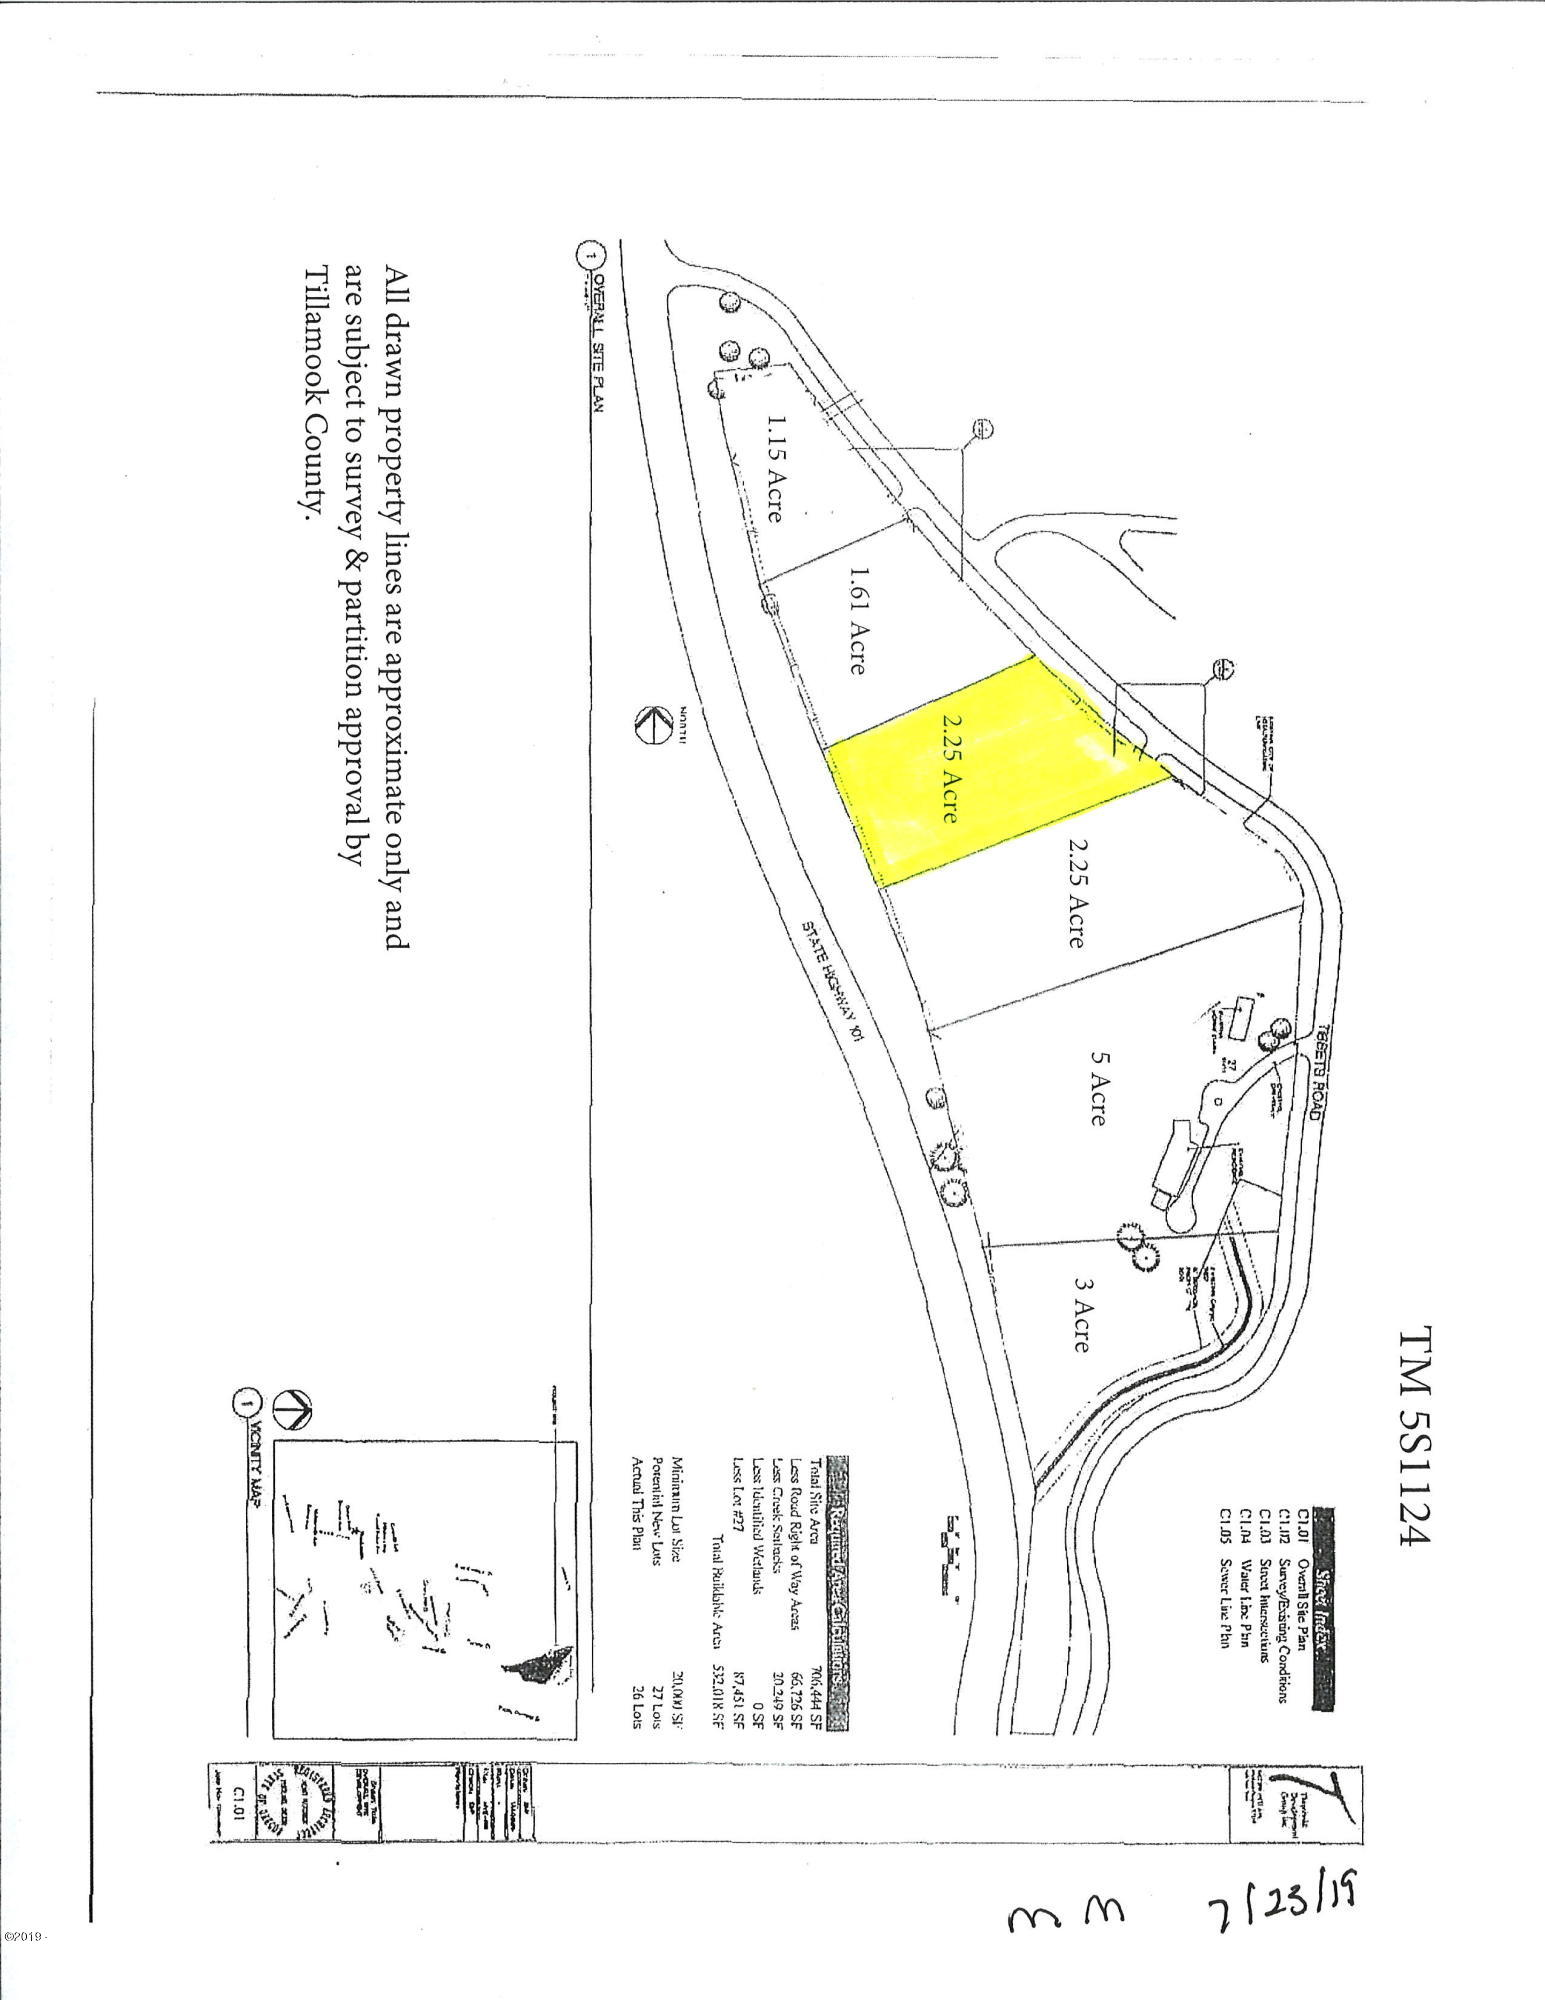 45000 BLK Tibbetts Rd, Neskowin, OR 97149 - 2.25 acres 1